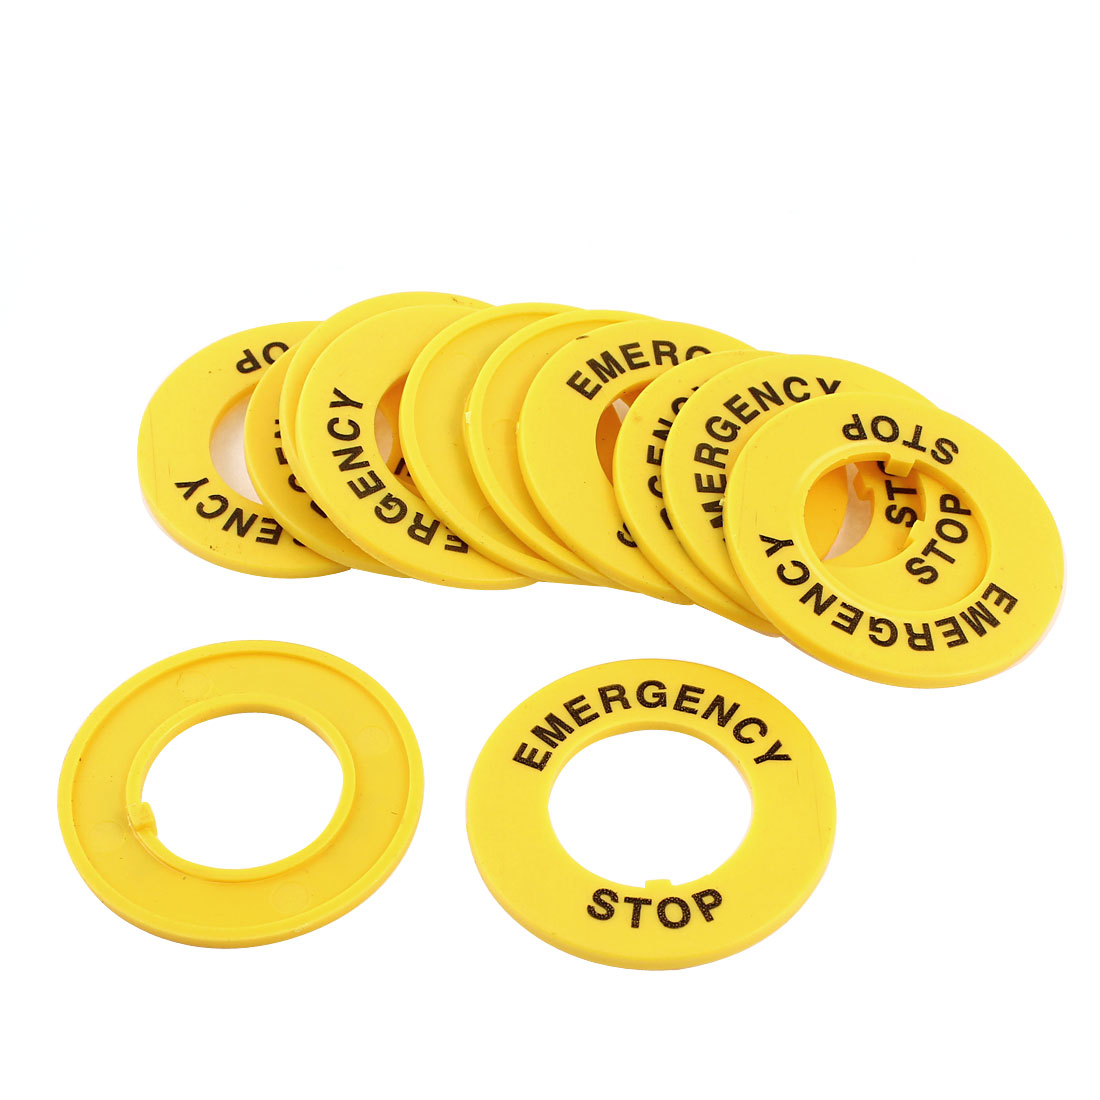 12 Pcs Round 22mm Dia Cutout Push Button Switches Safeguard Cover Yellow